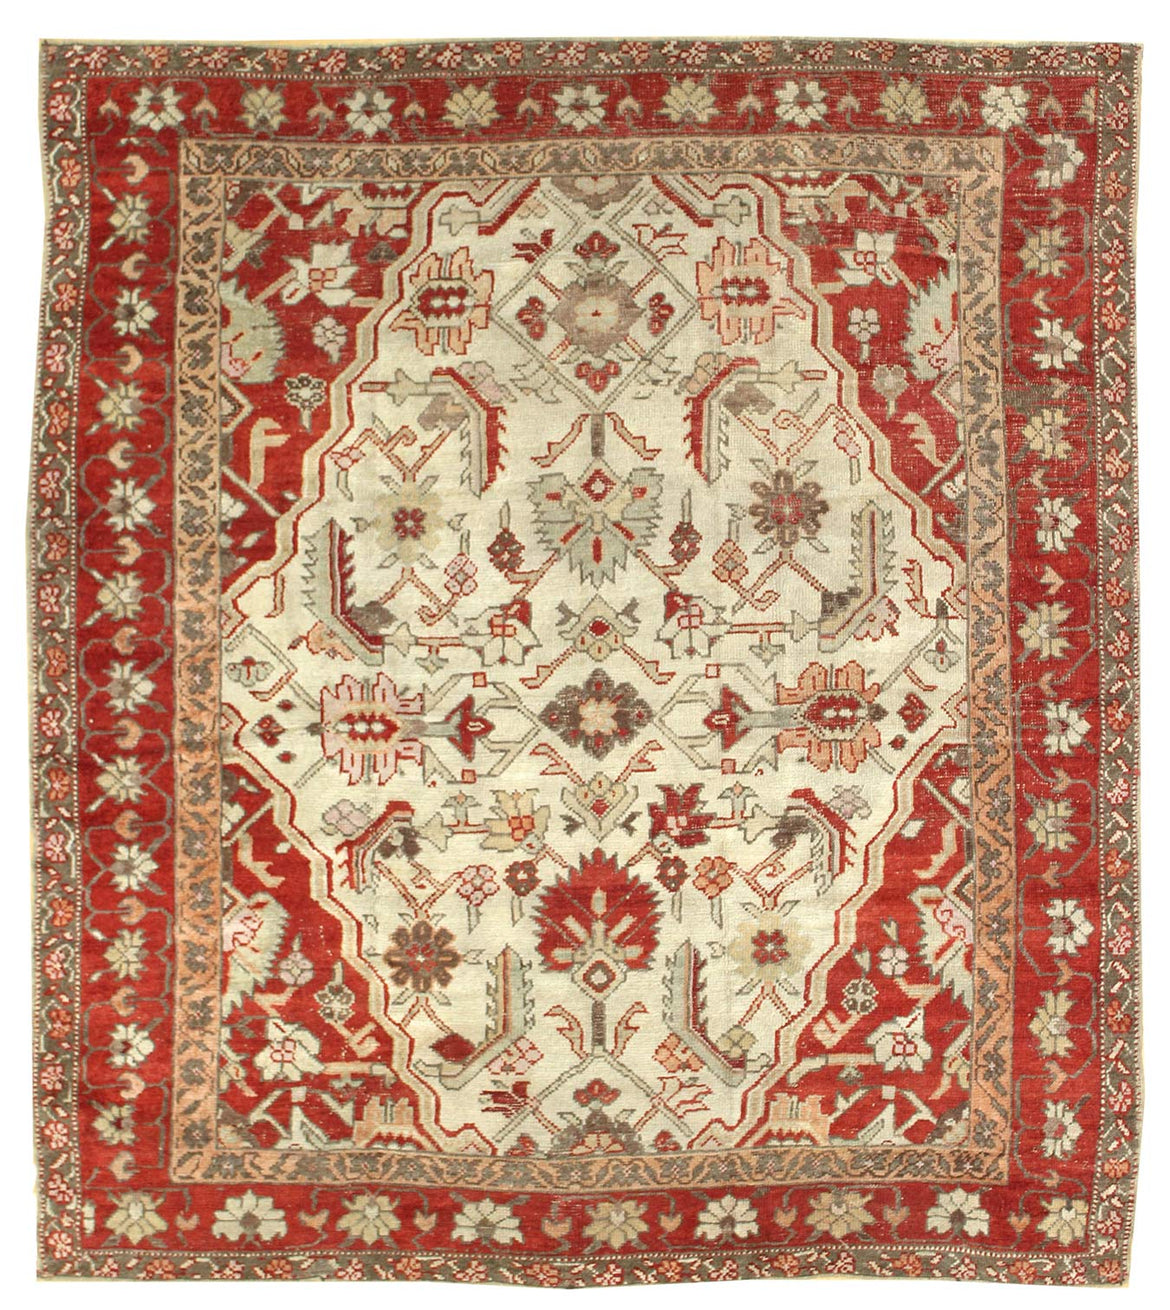 The History of Oushak Rugs and Their Beautiful Features